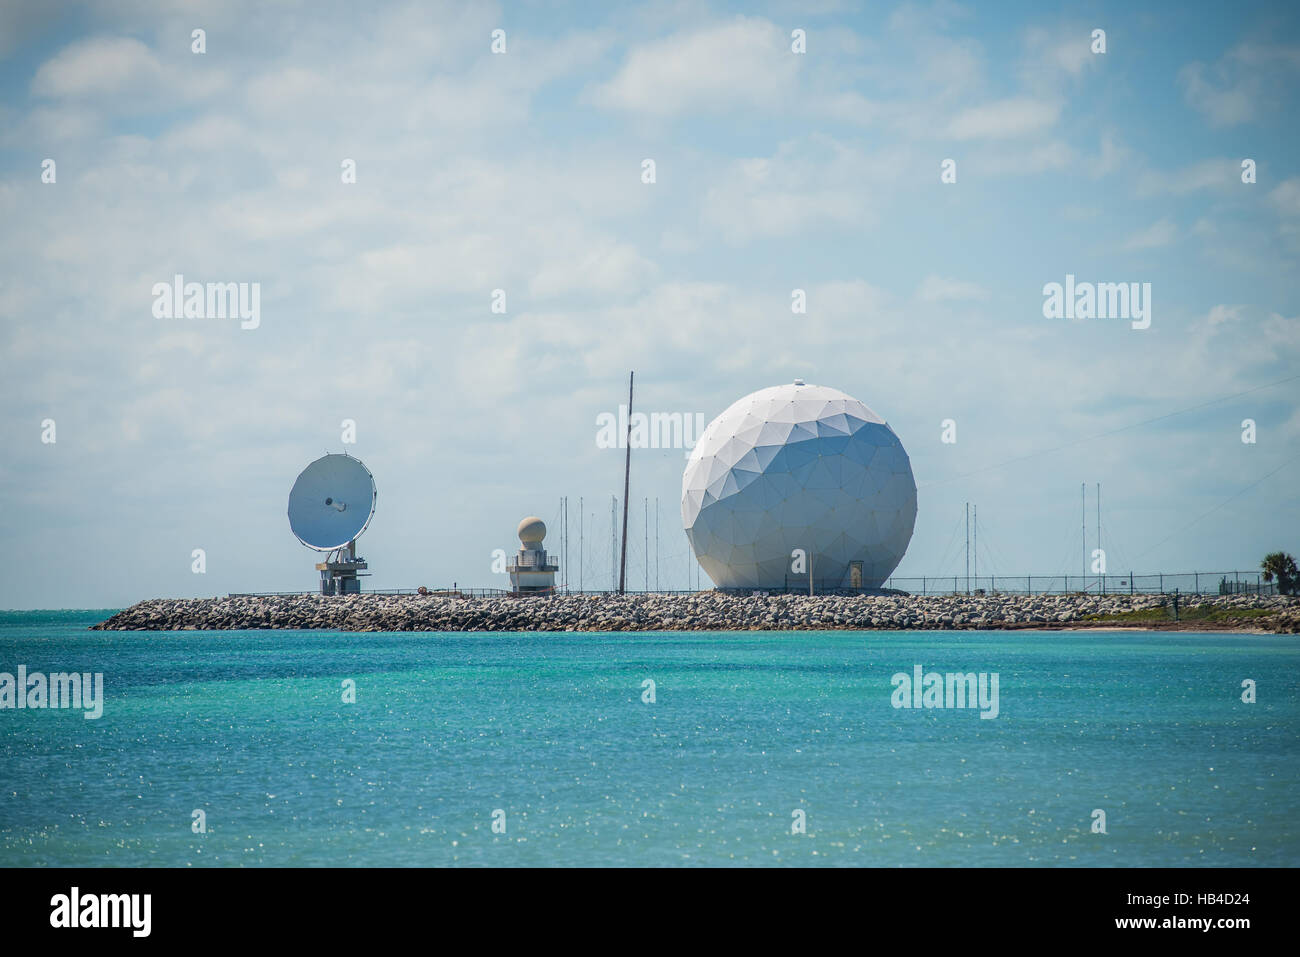 radar-dome-technology-on-the-sea-coast-HB4D24.jpg